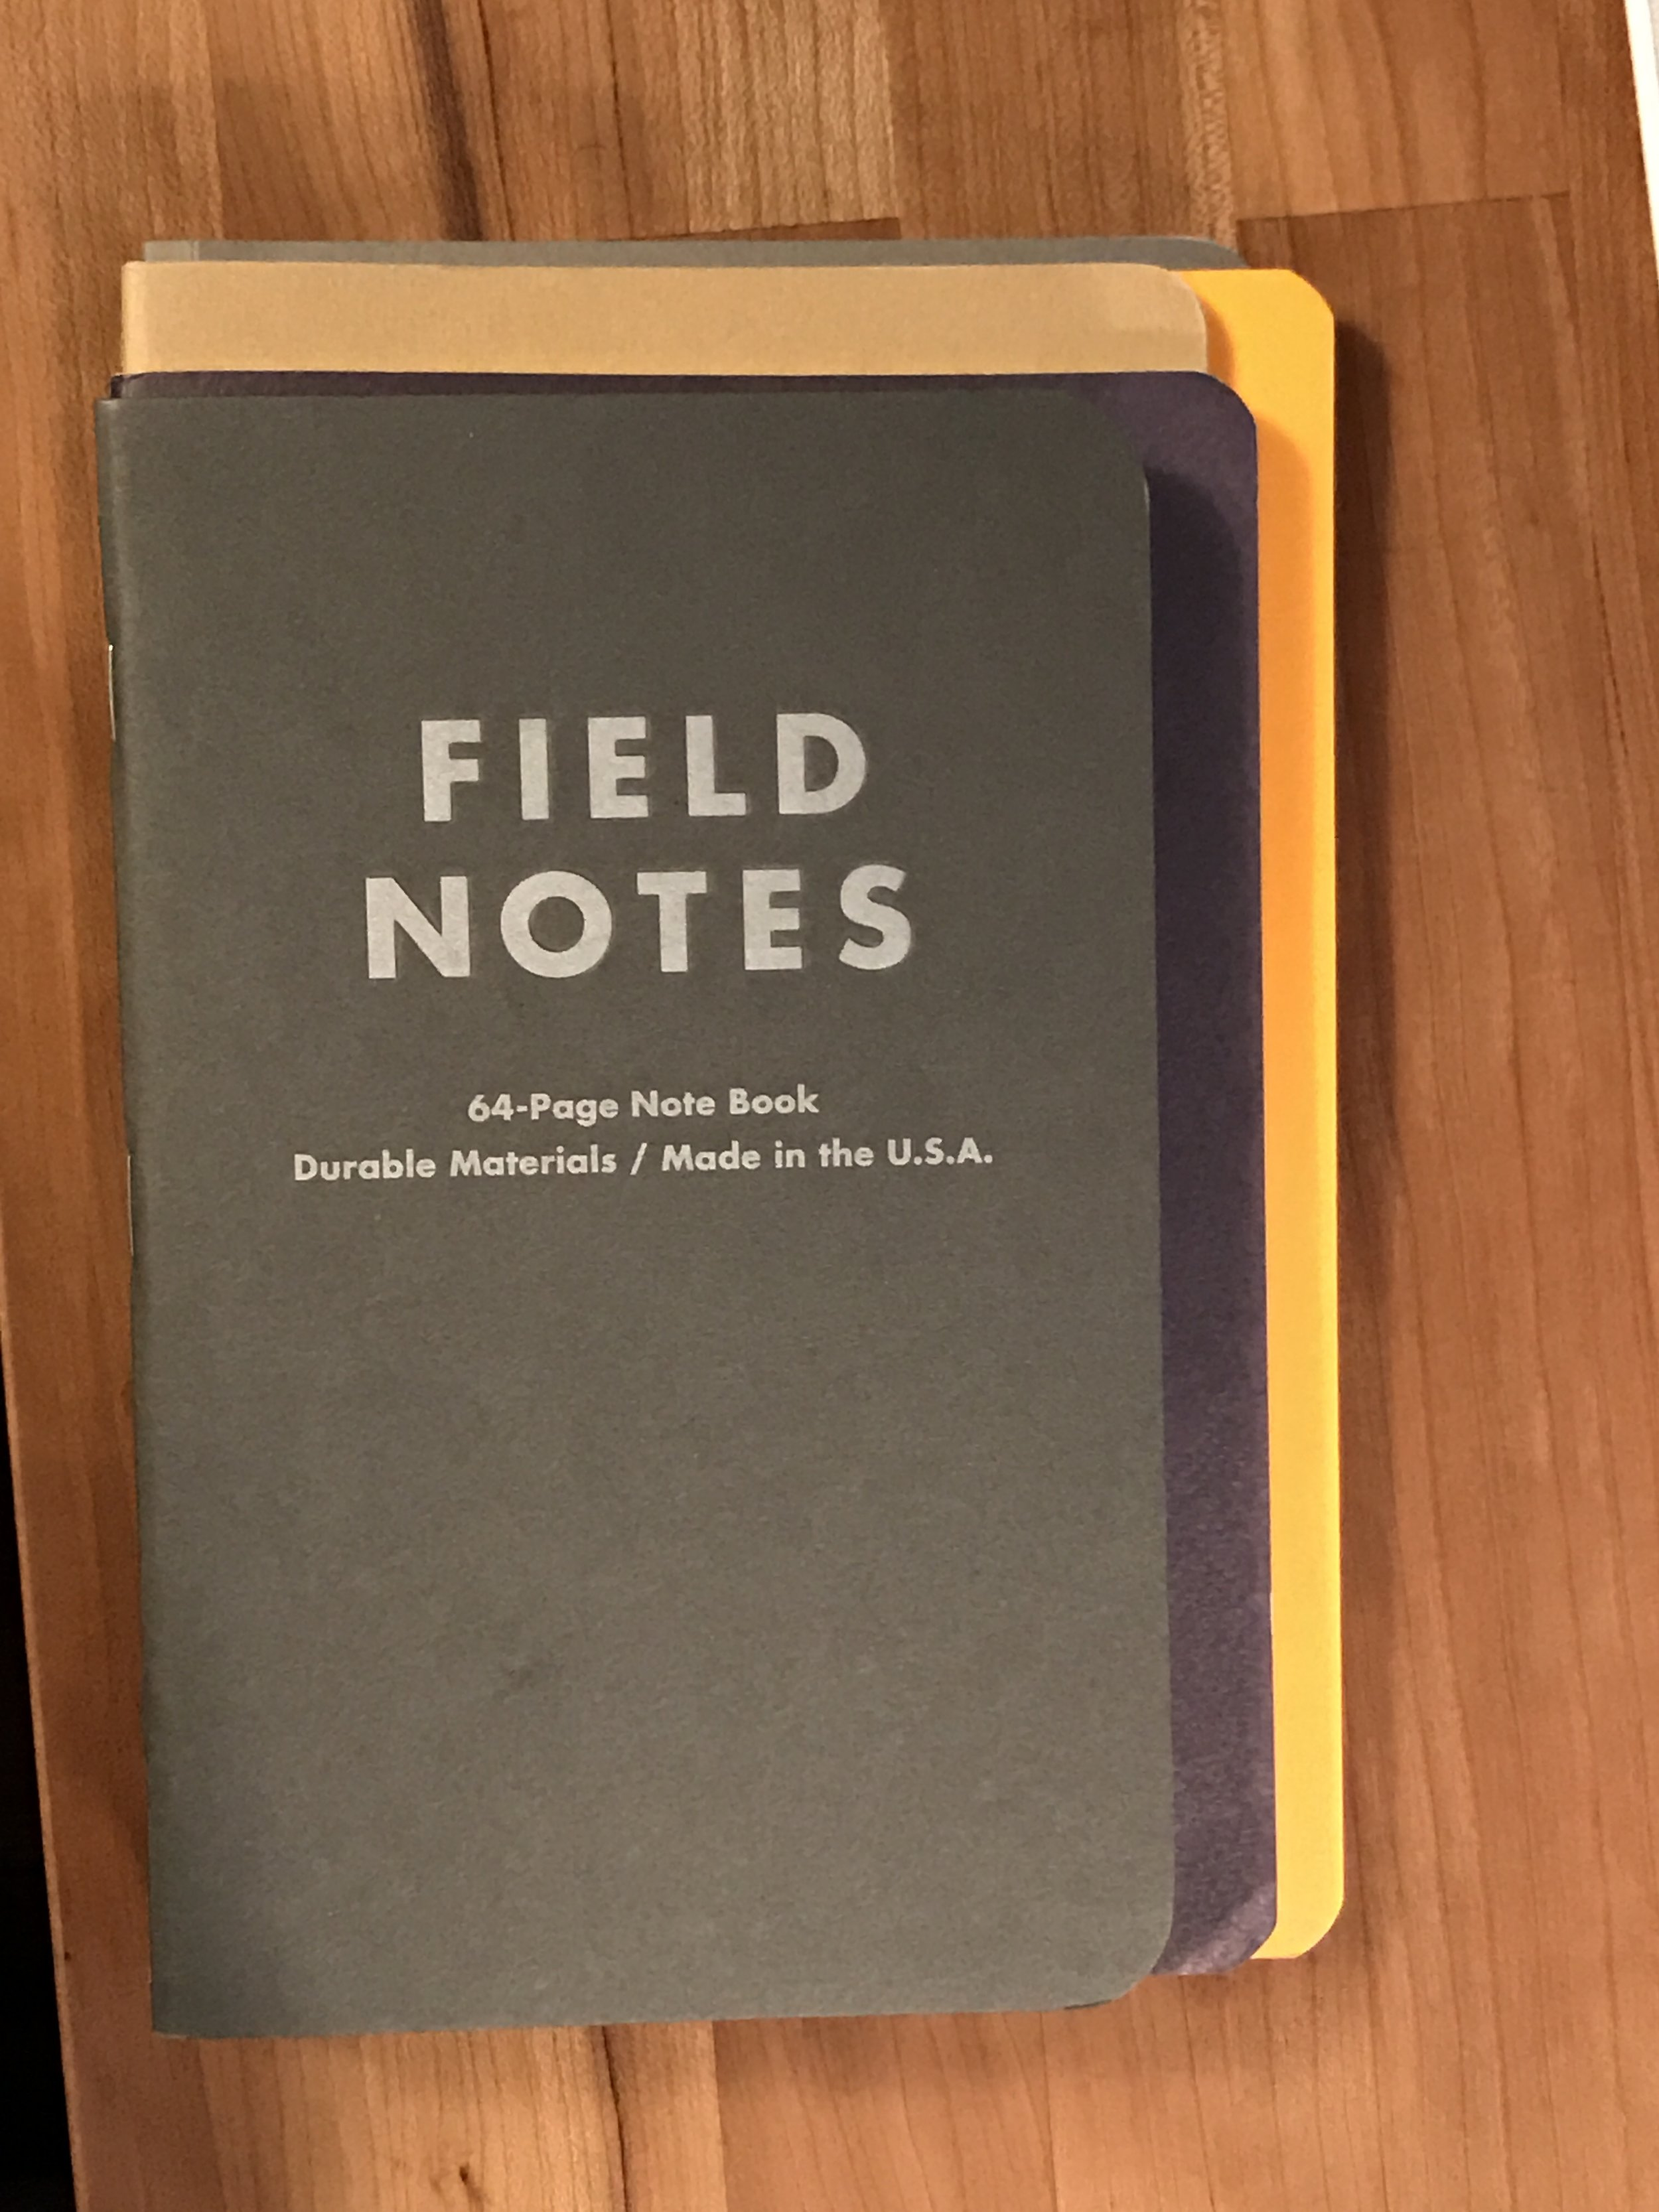 In stack order: Field Notes Arts & Science, Baron Fig Flagship Vanguard, Moleskine Cahier Large, Rhodia Side Staple A5, Write Notepads Paper Journal (barely peeking out the top.)